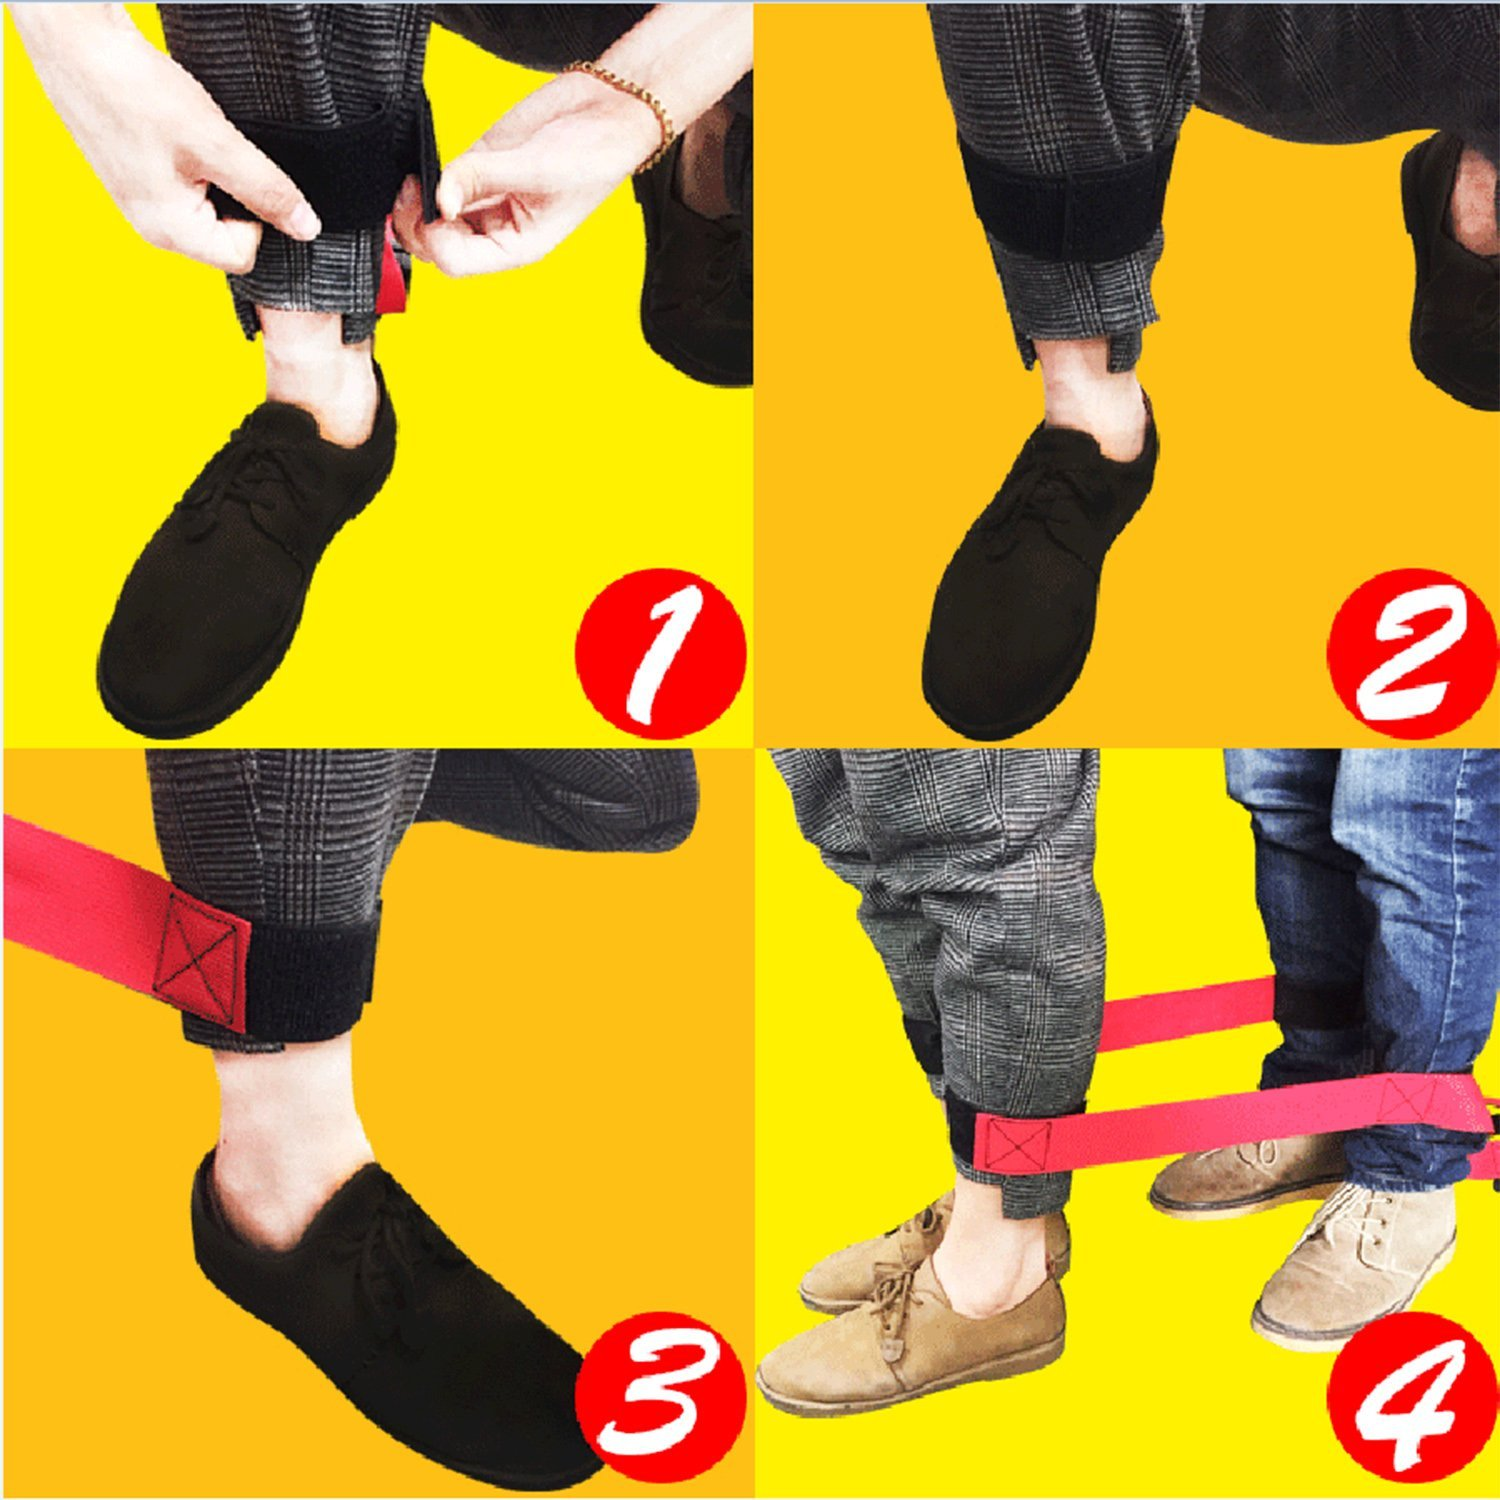 4 Legged Race Bands Outdoor Activities Teamwork Training for Kids Adults Families Birthday Party Outside Children Team Game Fullsexy